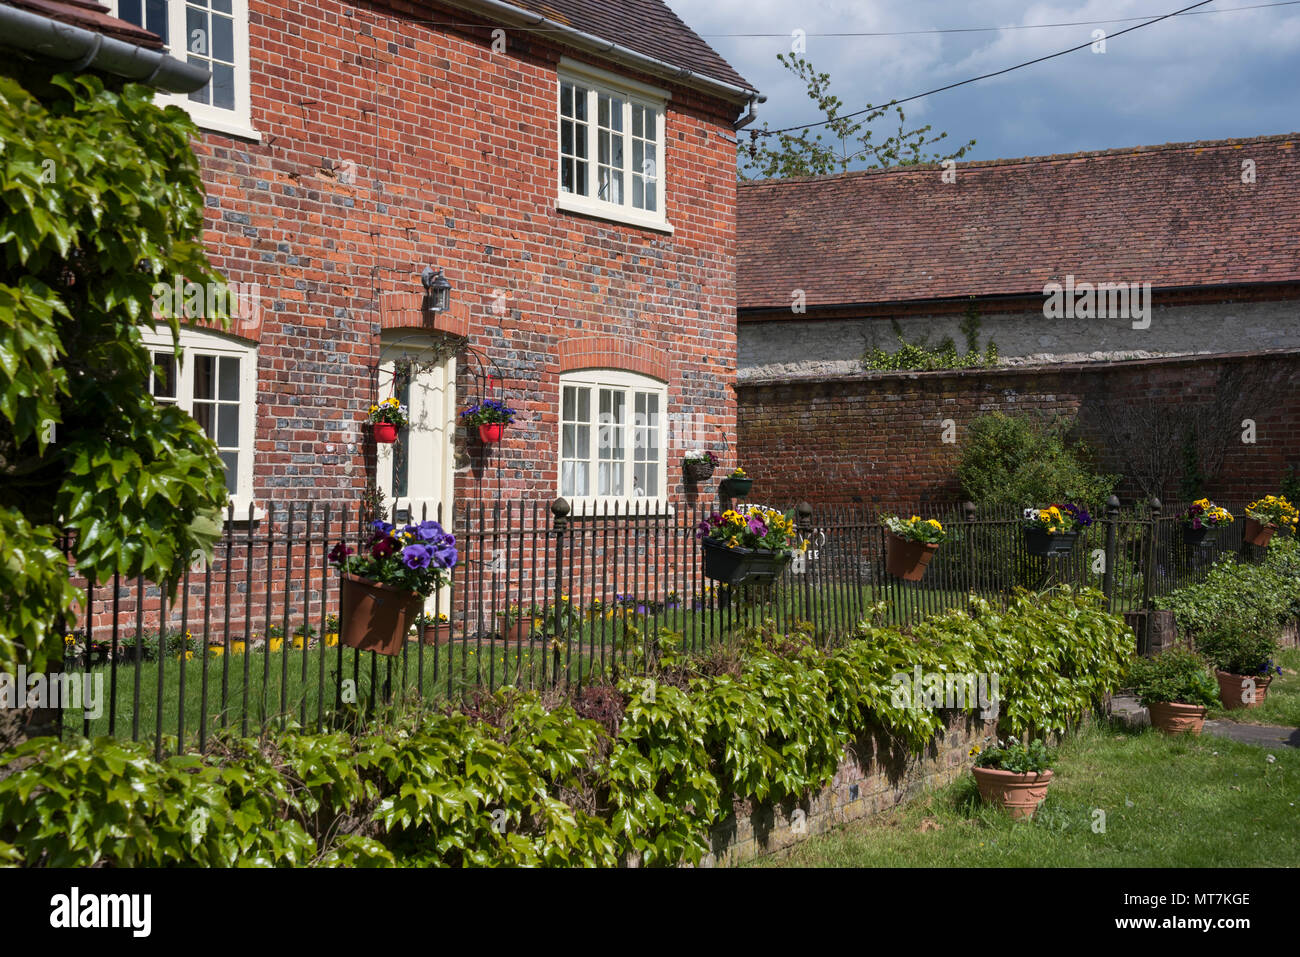 Cottage on Castle Road, Shirburn, Oxfordshire - Stock Image